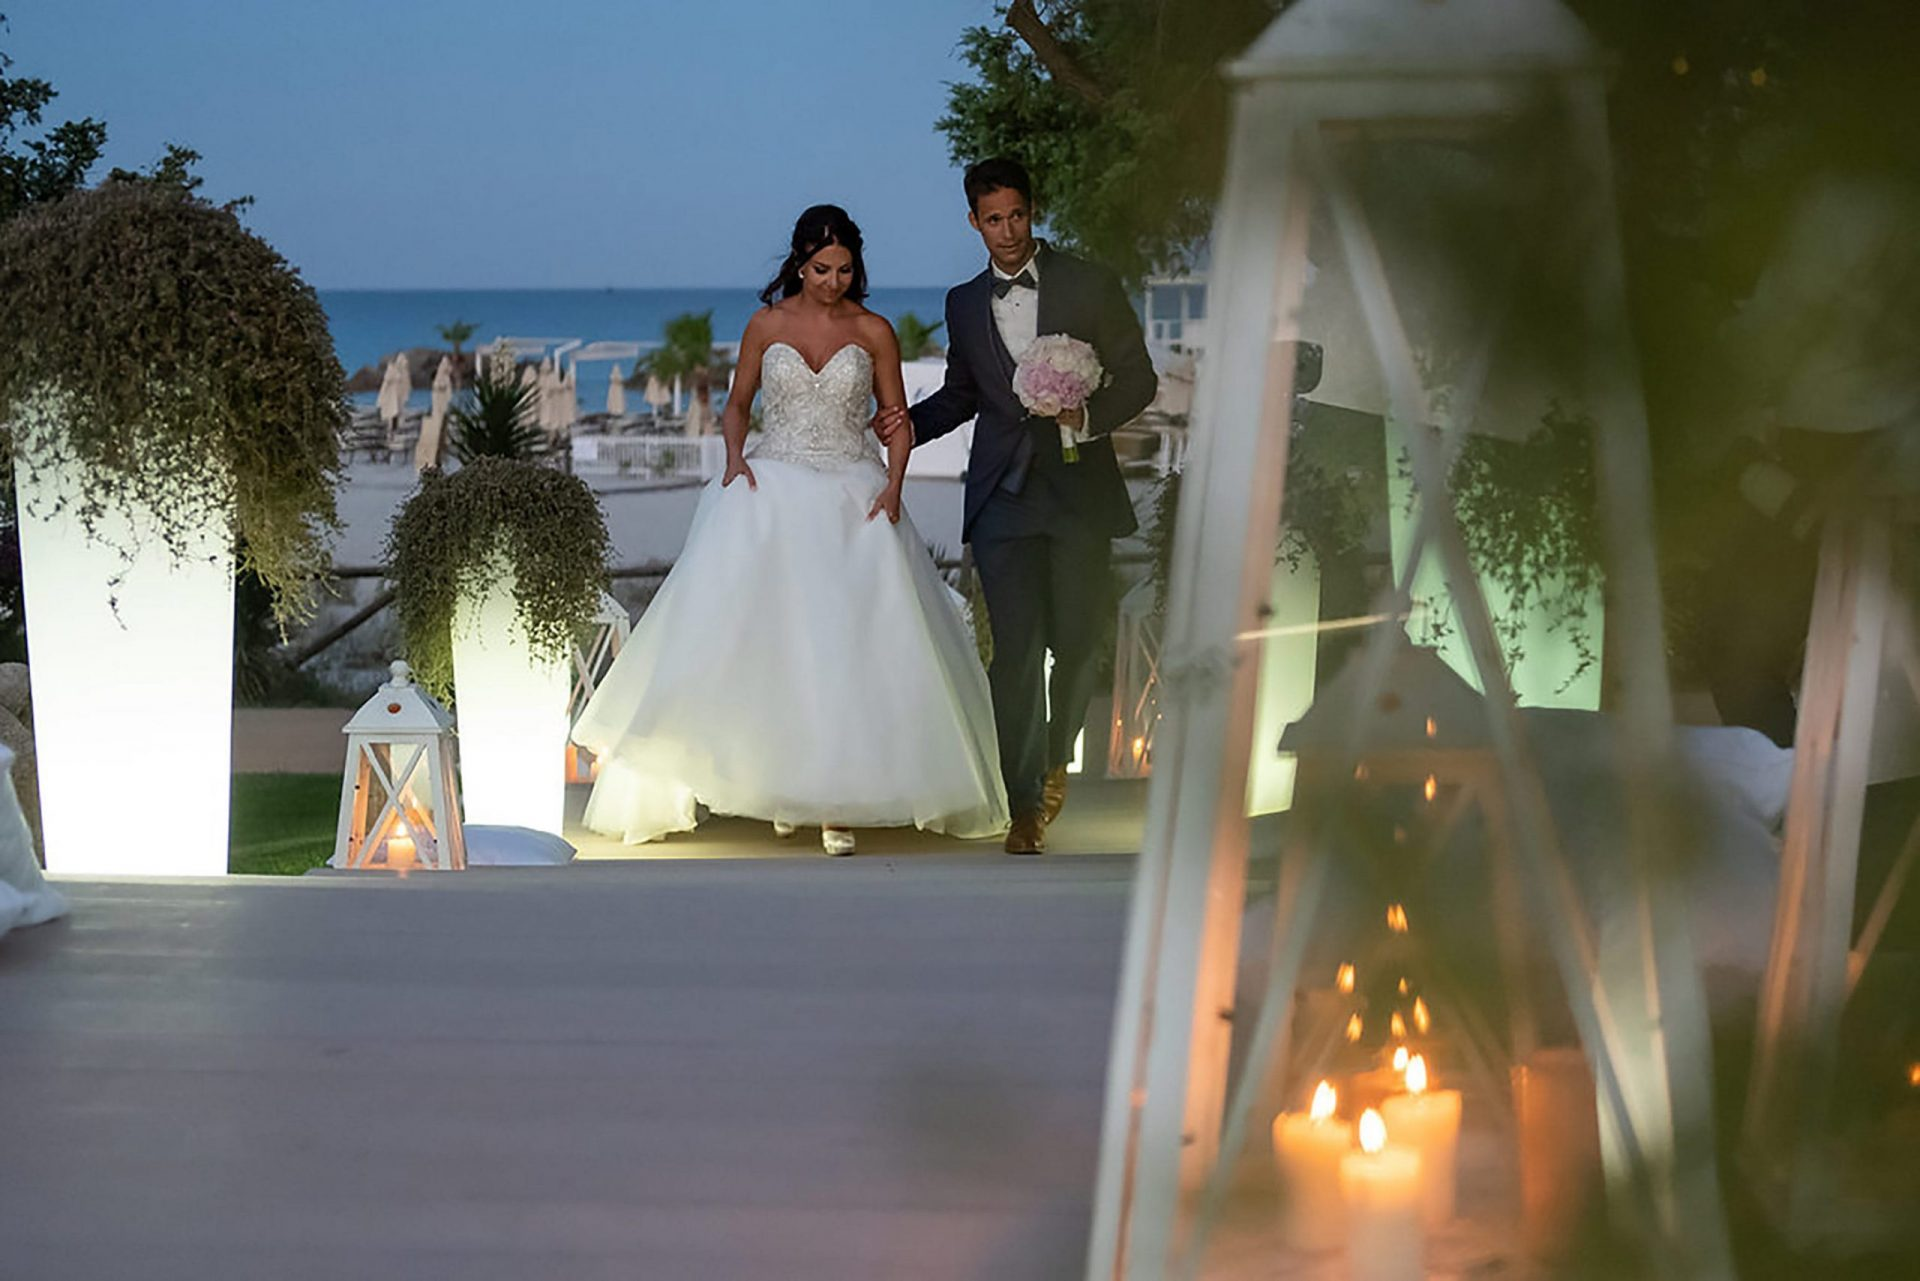 Andrea and Sebastien, wedding at Pullman Timi Ama, Villasimius